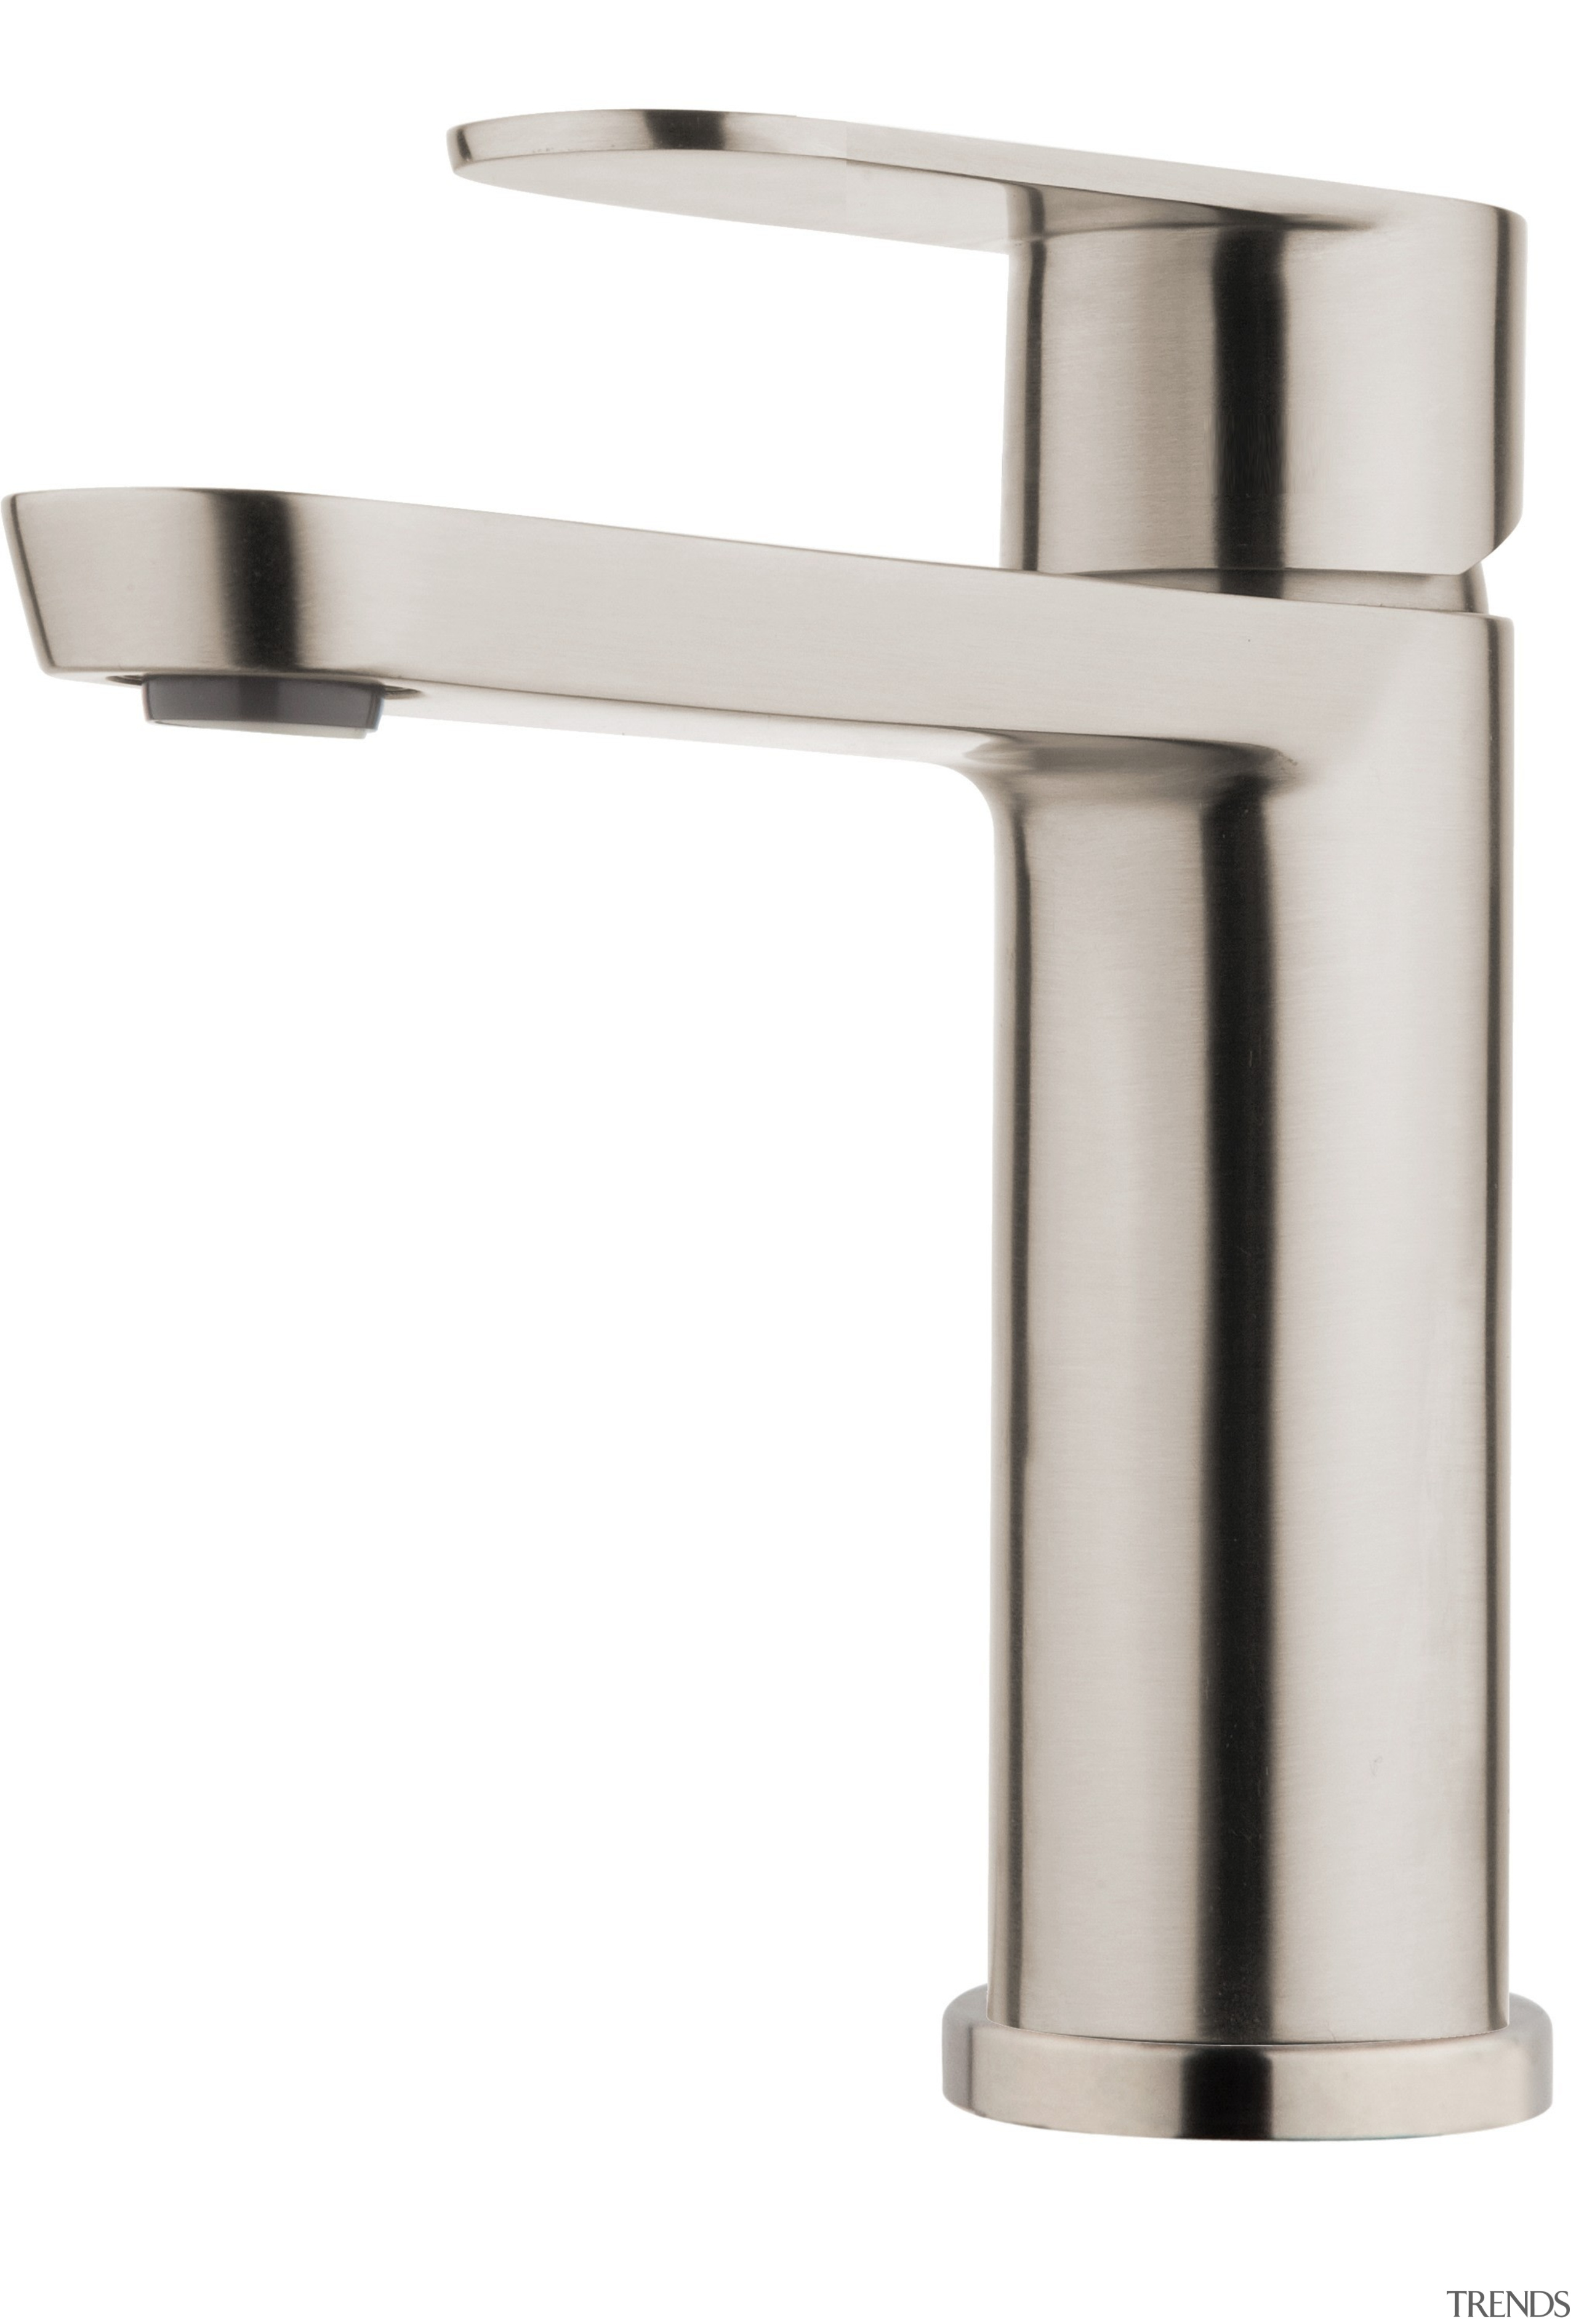 For more information, please visit www.foreno.co.nz or hardware, plumbing fixture, product design, tap, white